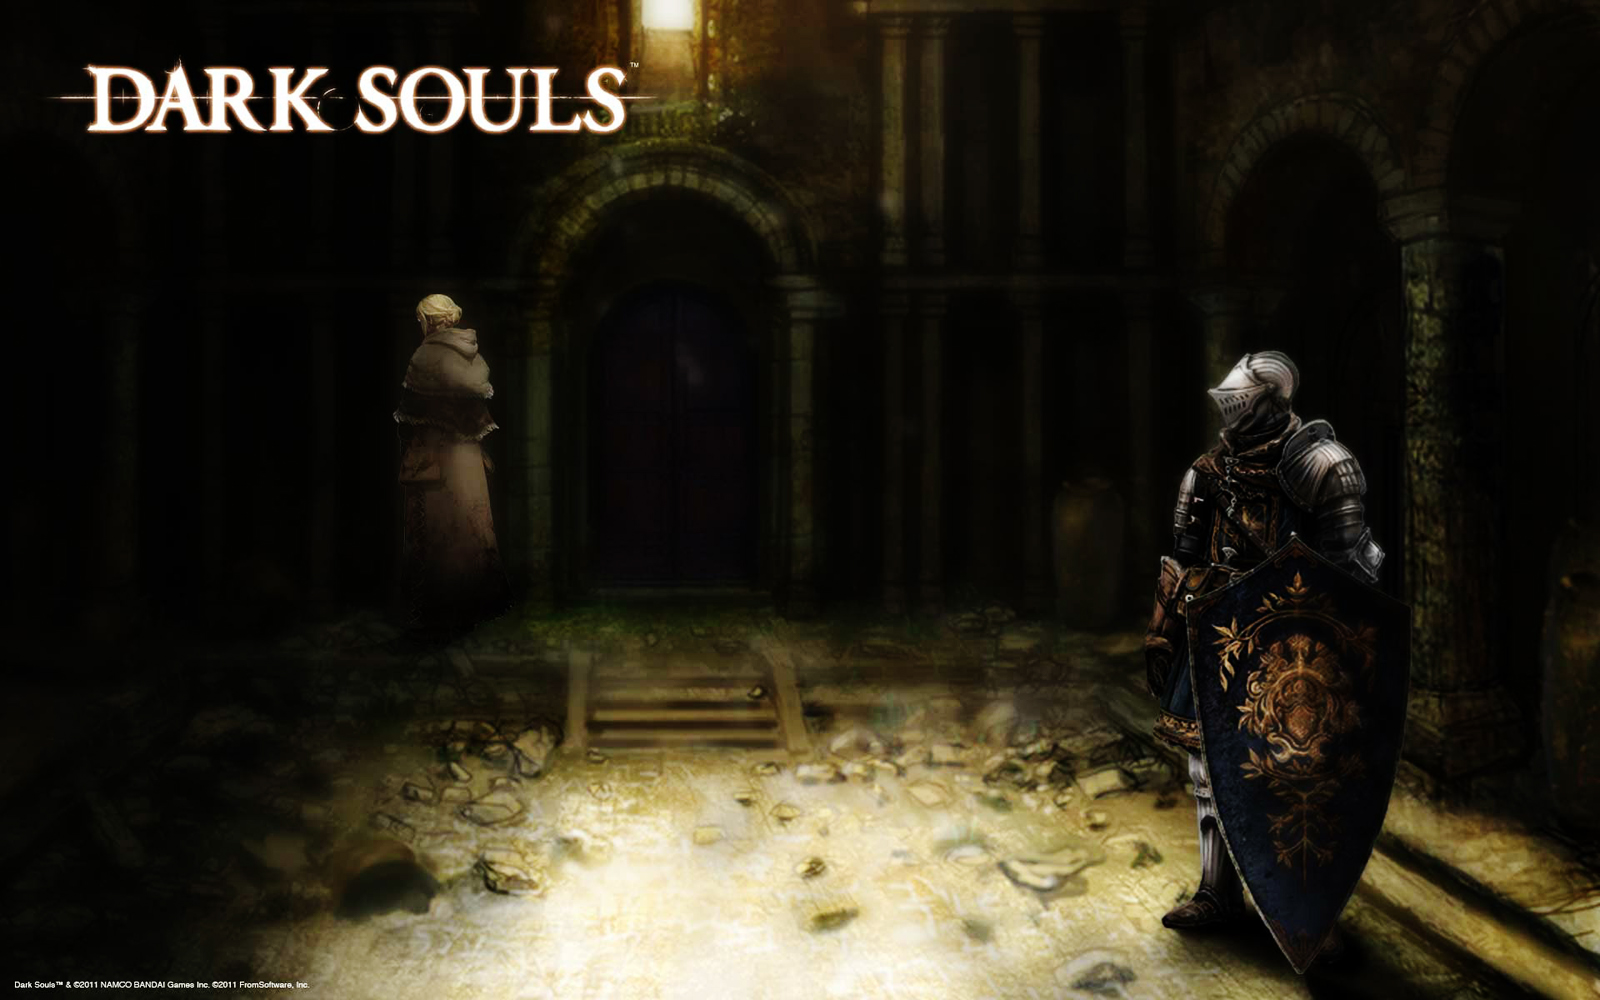 Free Download Dark Souls Hd Wallpapers And Dvd Cover